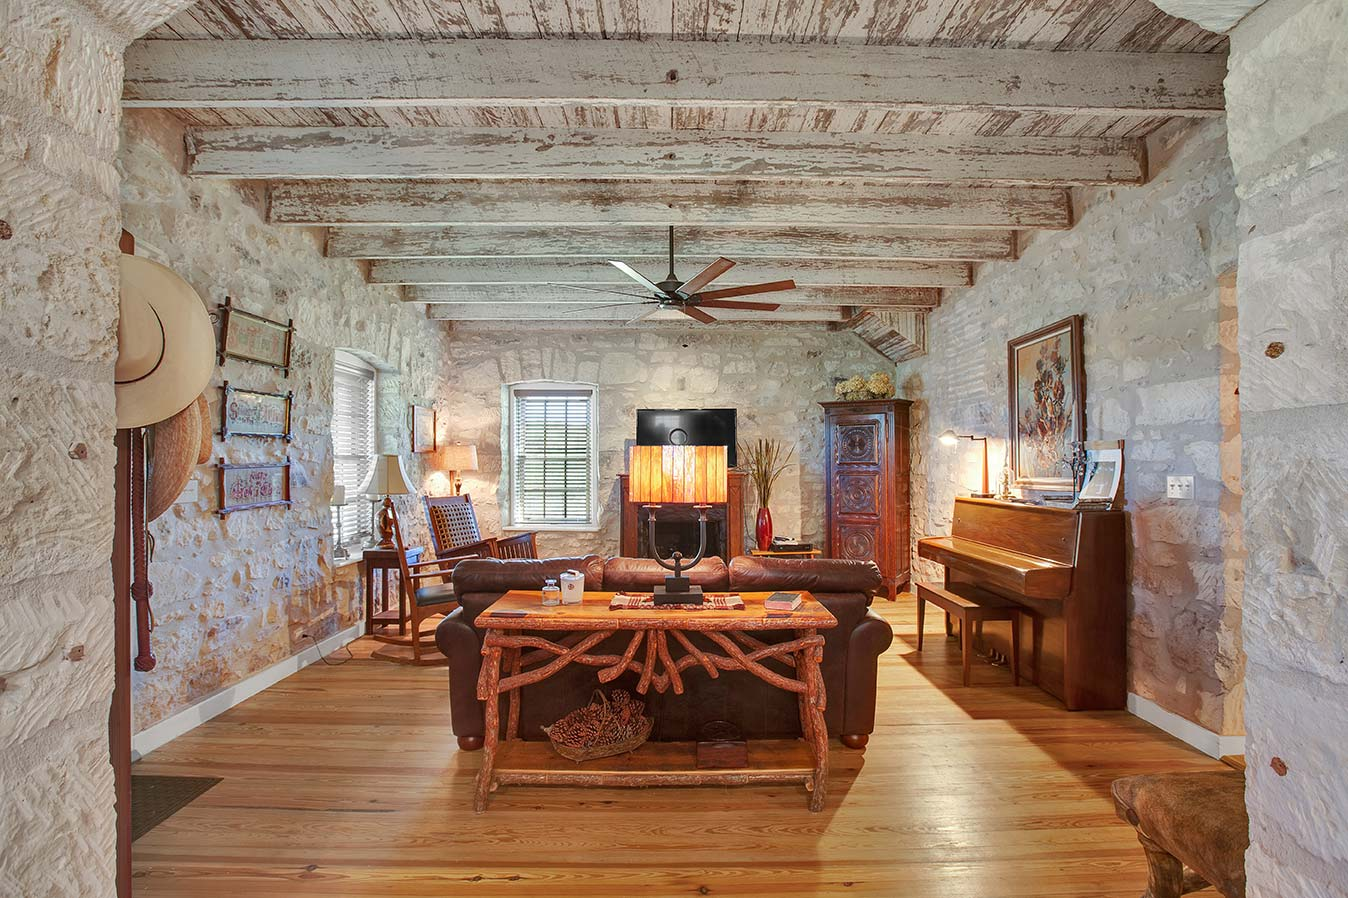 fredericksburg-realty-squaw-creek-ranch-real-estate-land-for-sale-home-house-historic-12.jpg